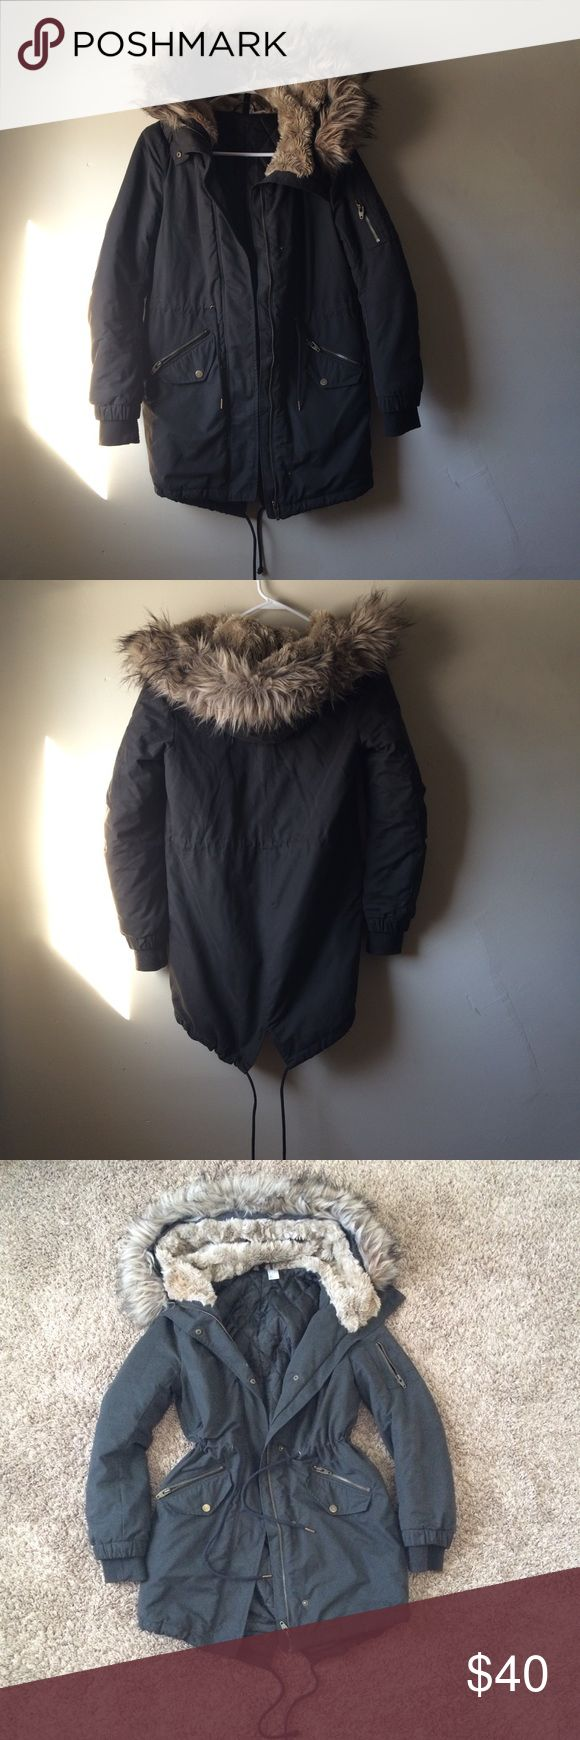 H&M Black Parka coat Women's H&M Black Parka fur hooded bomber coat size 2 can fit a S-M  Has removable fur around hood  With faux fur in the inside of hood to keep you extra warm Has strings to pull in waist and bottom of coat Only selling because I want it in army green   In great condition H&M Jackets & Coats Utility Jackets